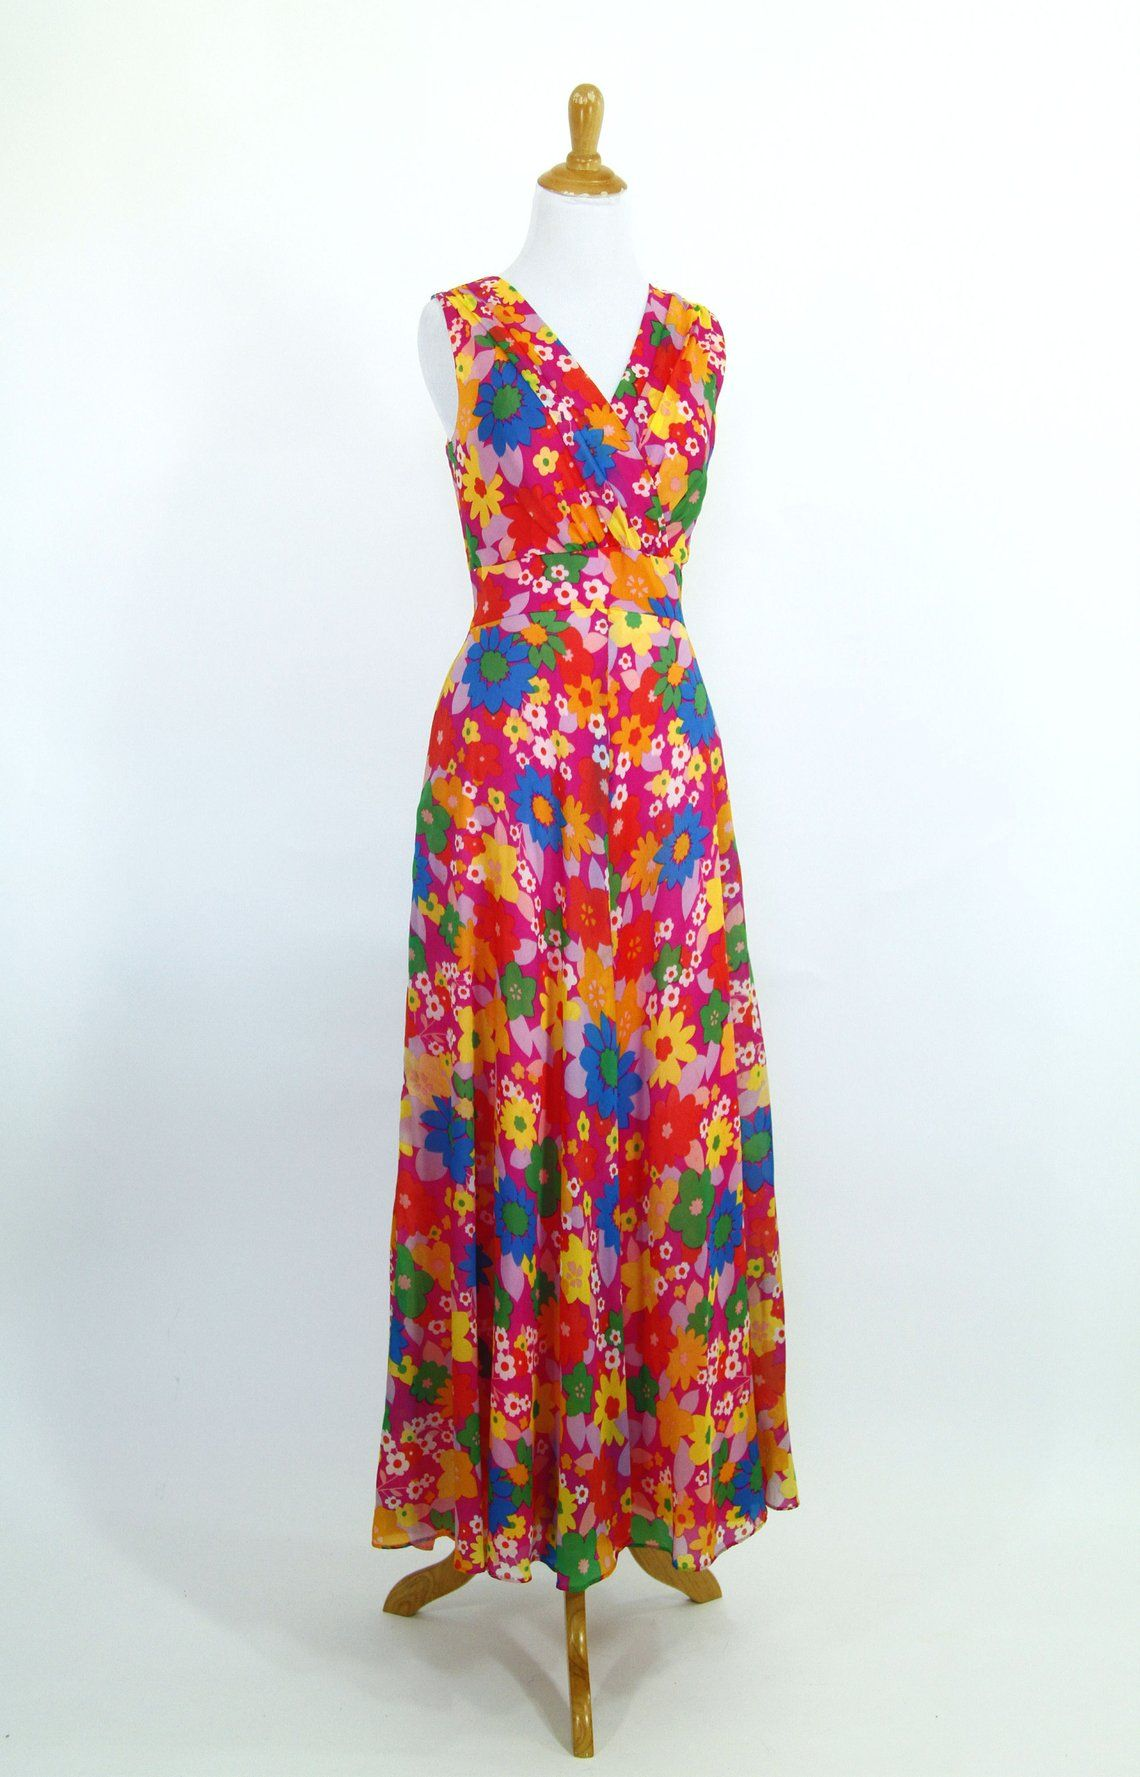 8e0f7f4529 Vintage 1960s Dress 60s 70s Floral Print Chiffon Maxi Dress